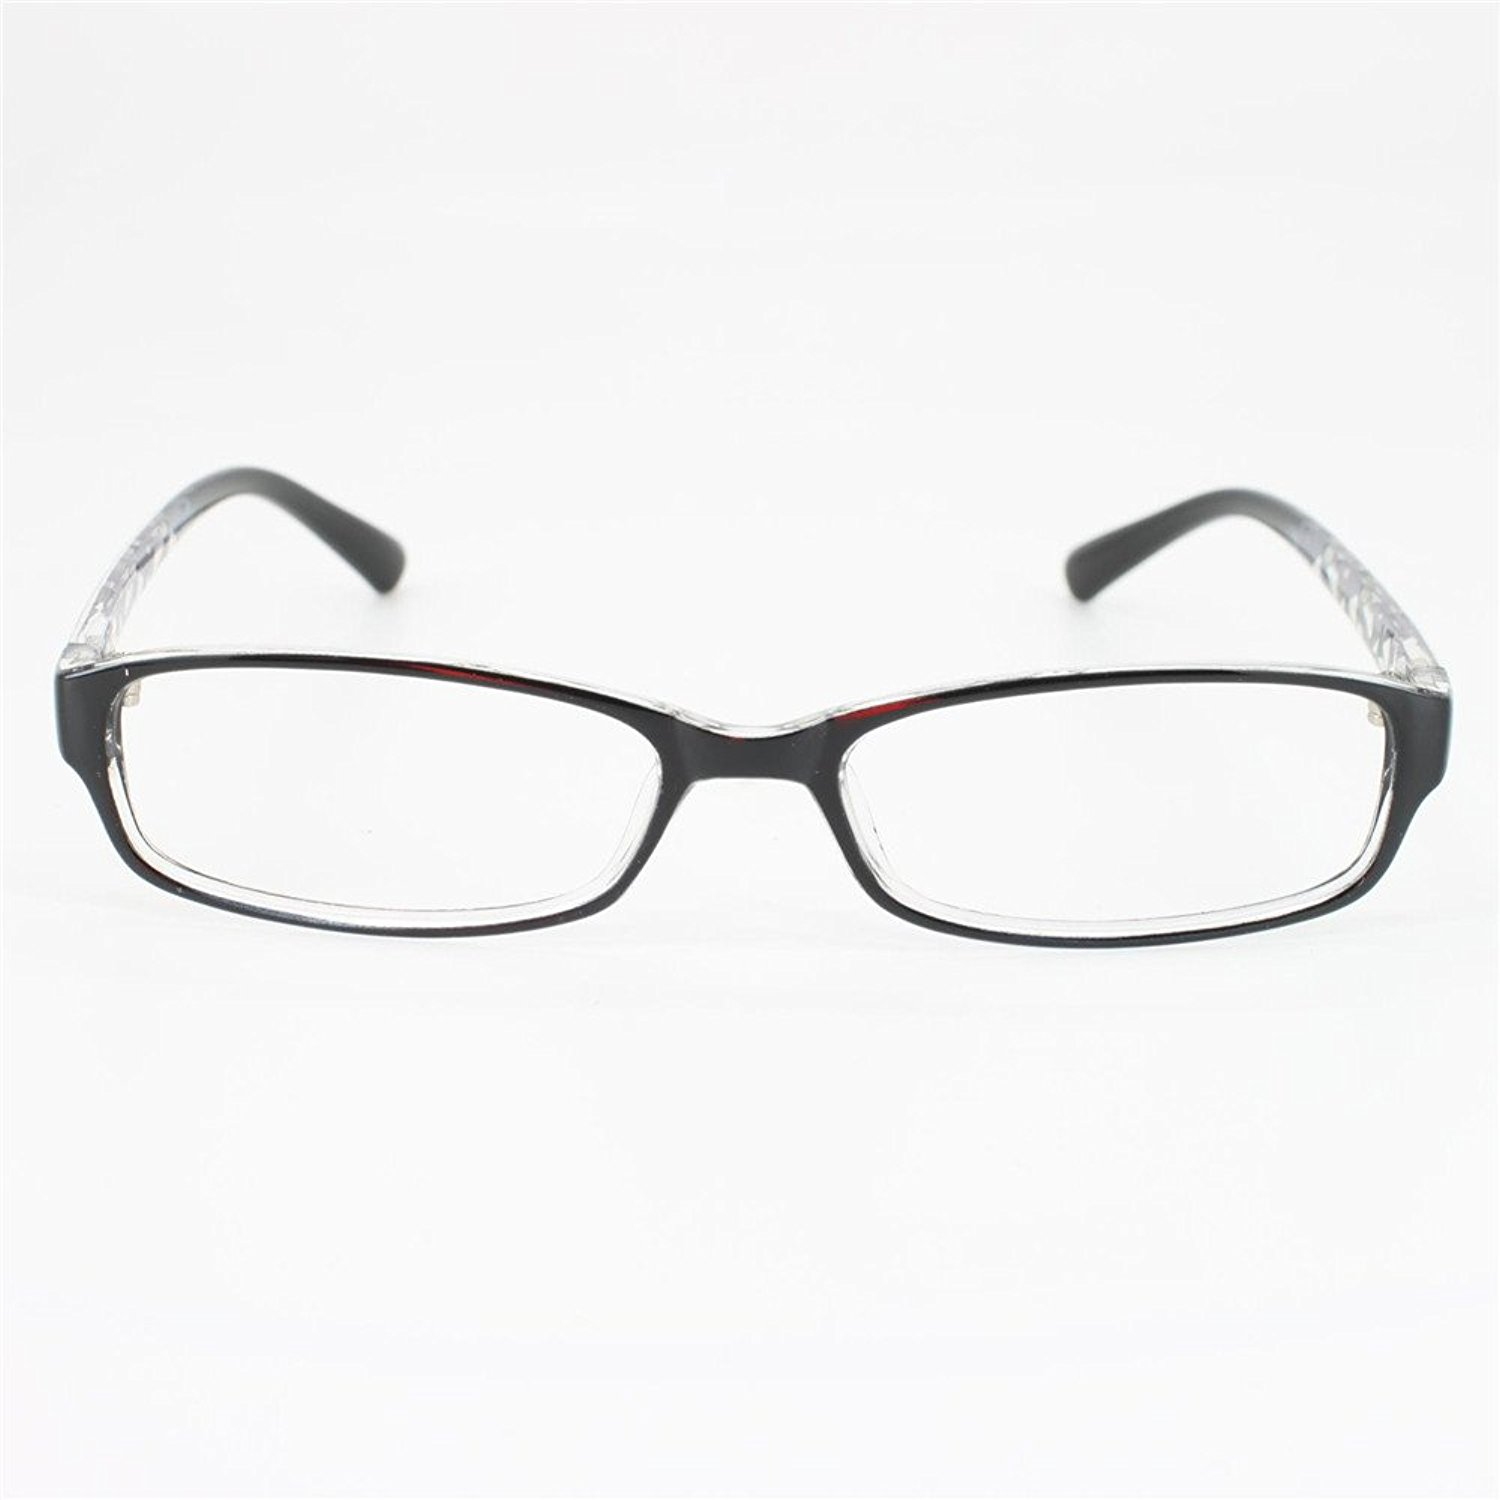 927d6c6c26 Get Quotations · EyeBuyExpress Rectangle Black Reading Glasses Stainless  Steel Frame